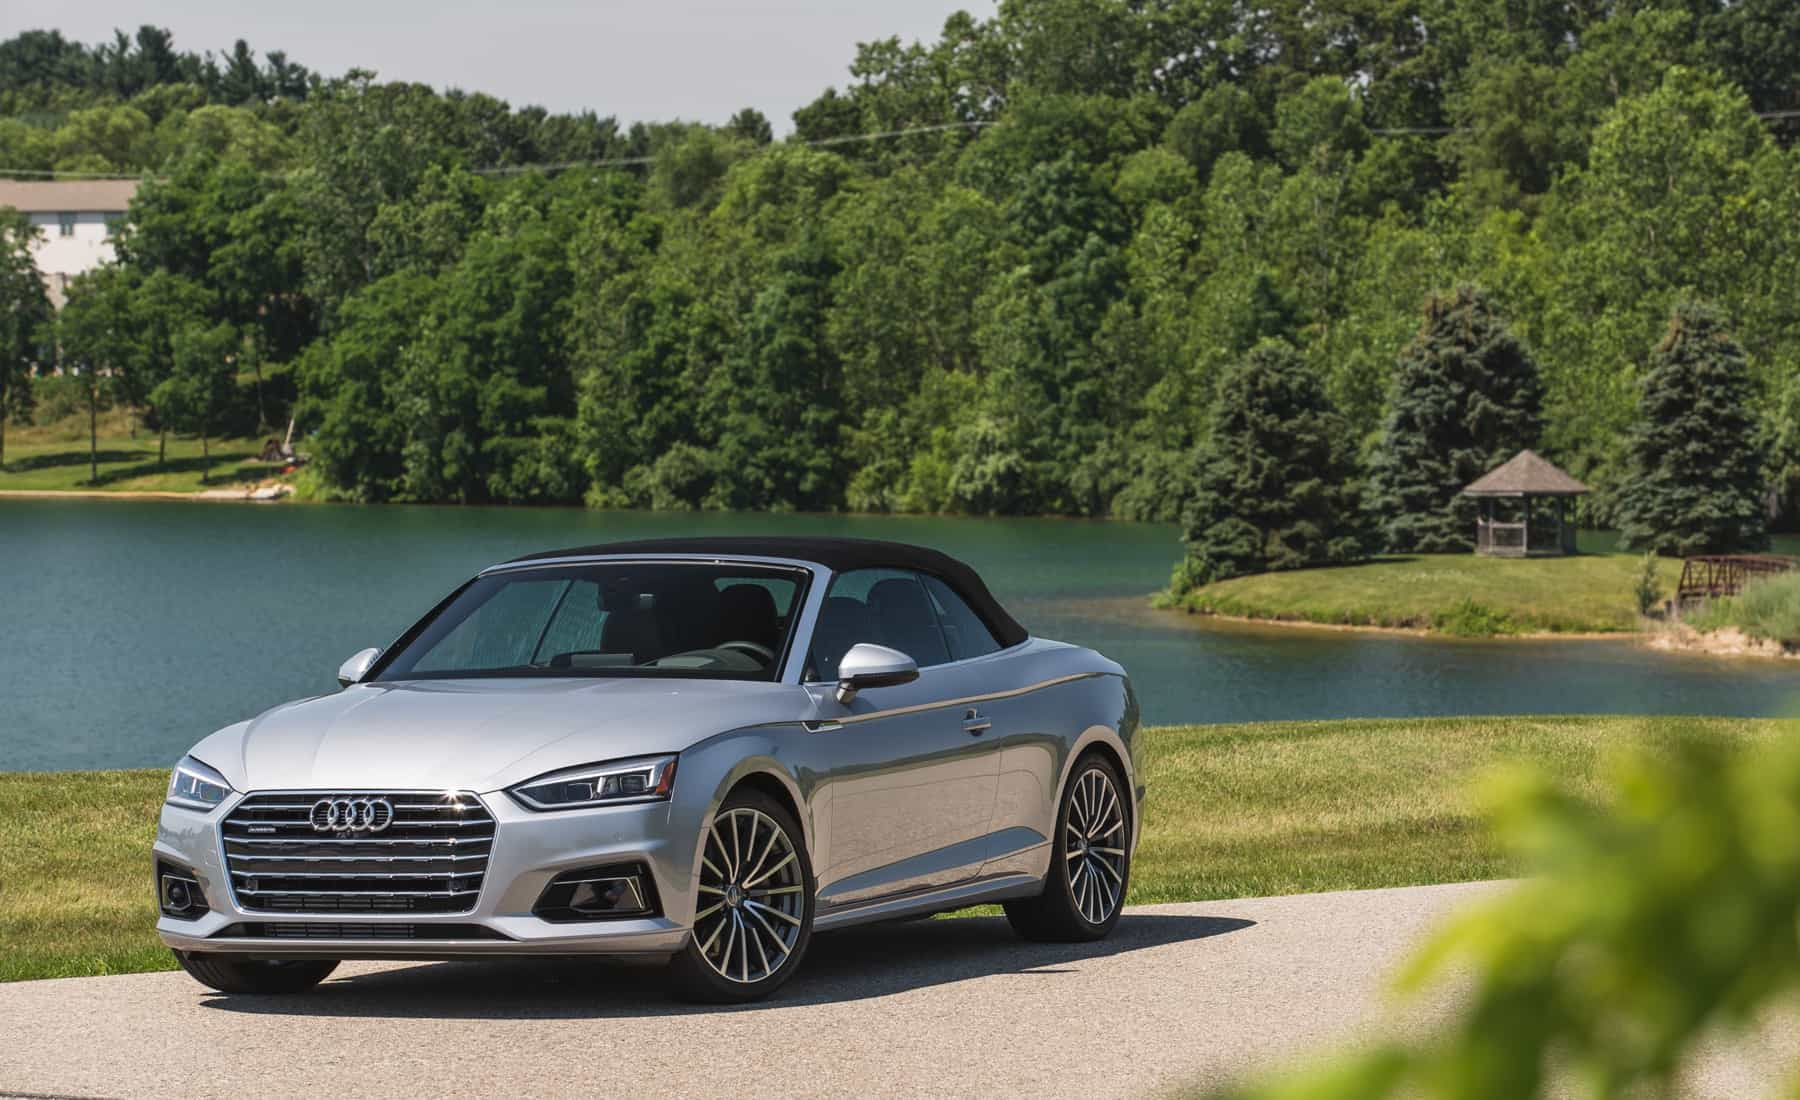 2018 Audi A5 Cabriolet Exterior Roof Close (Photo 2 of 45)